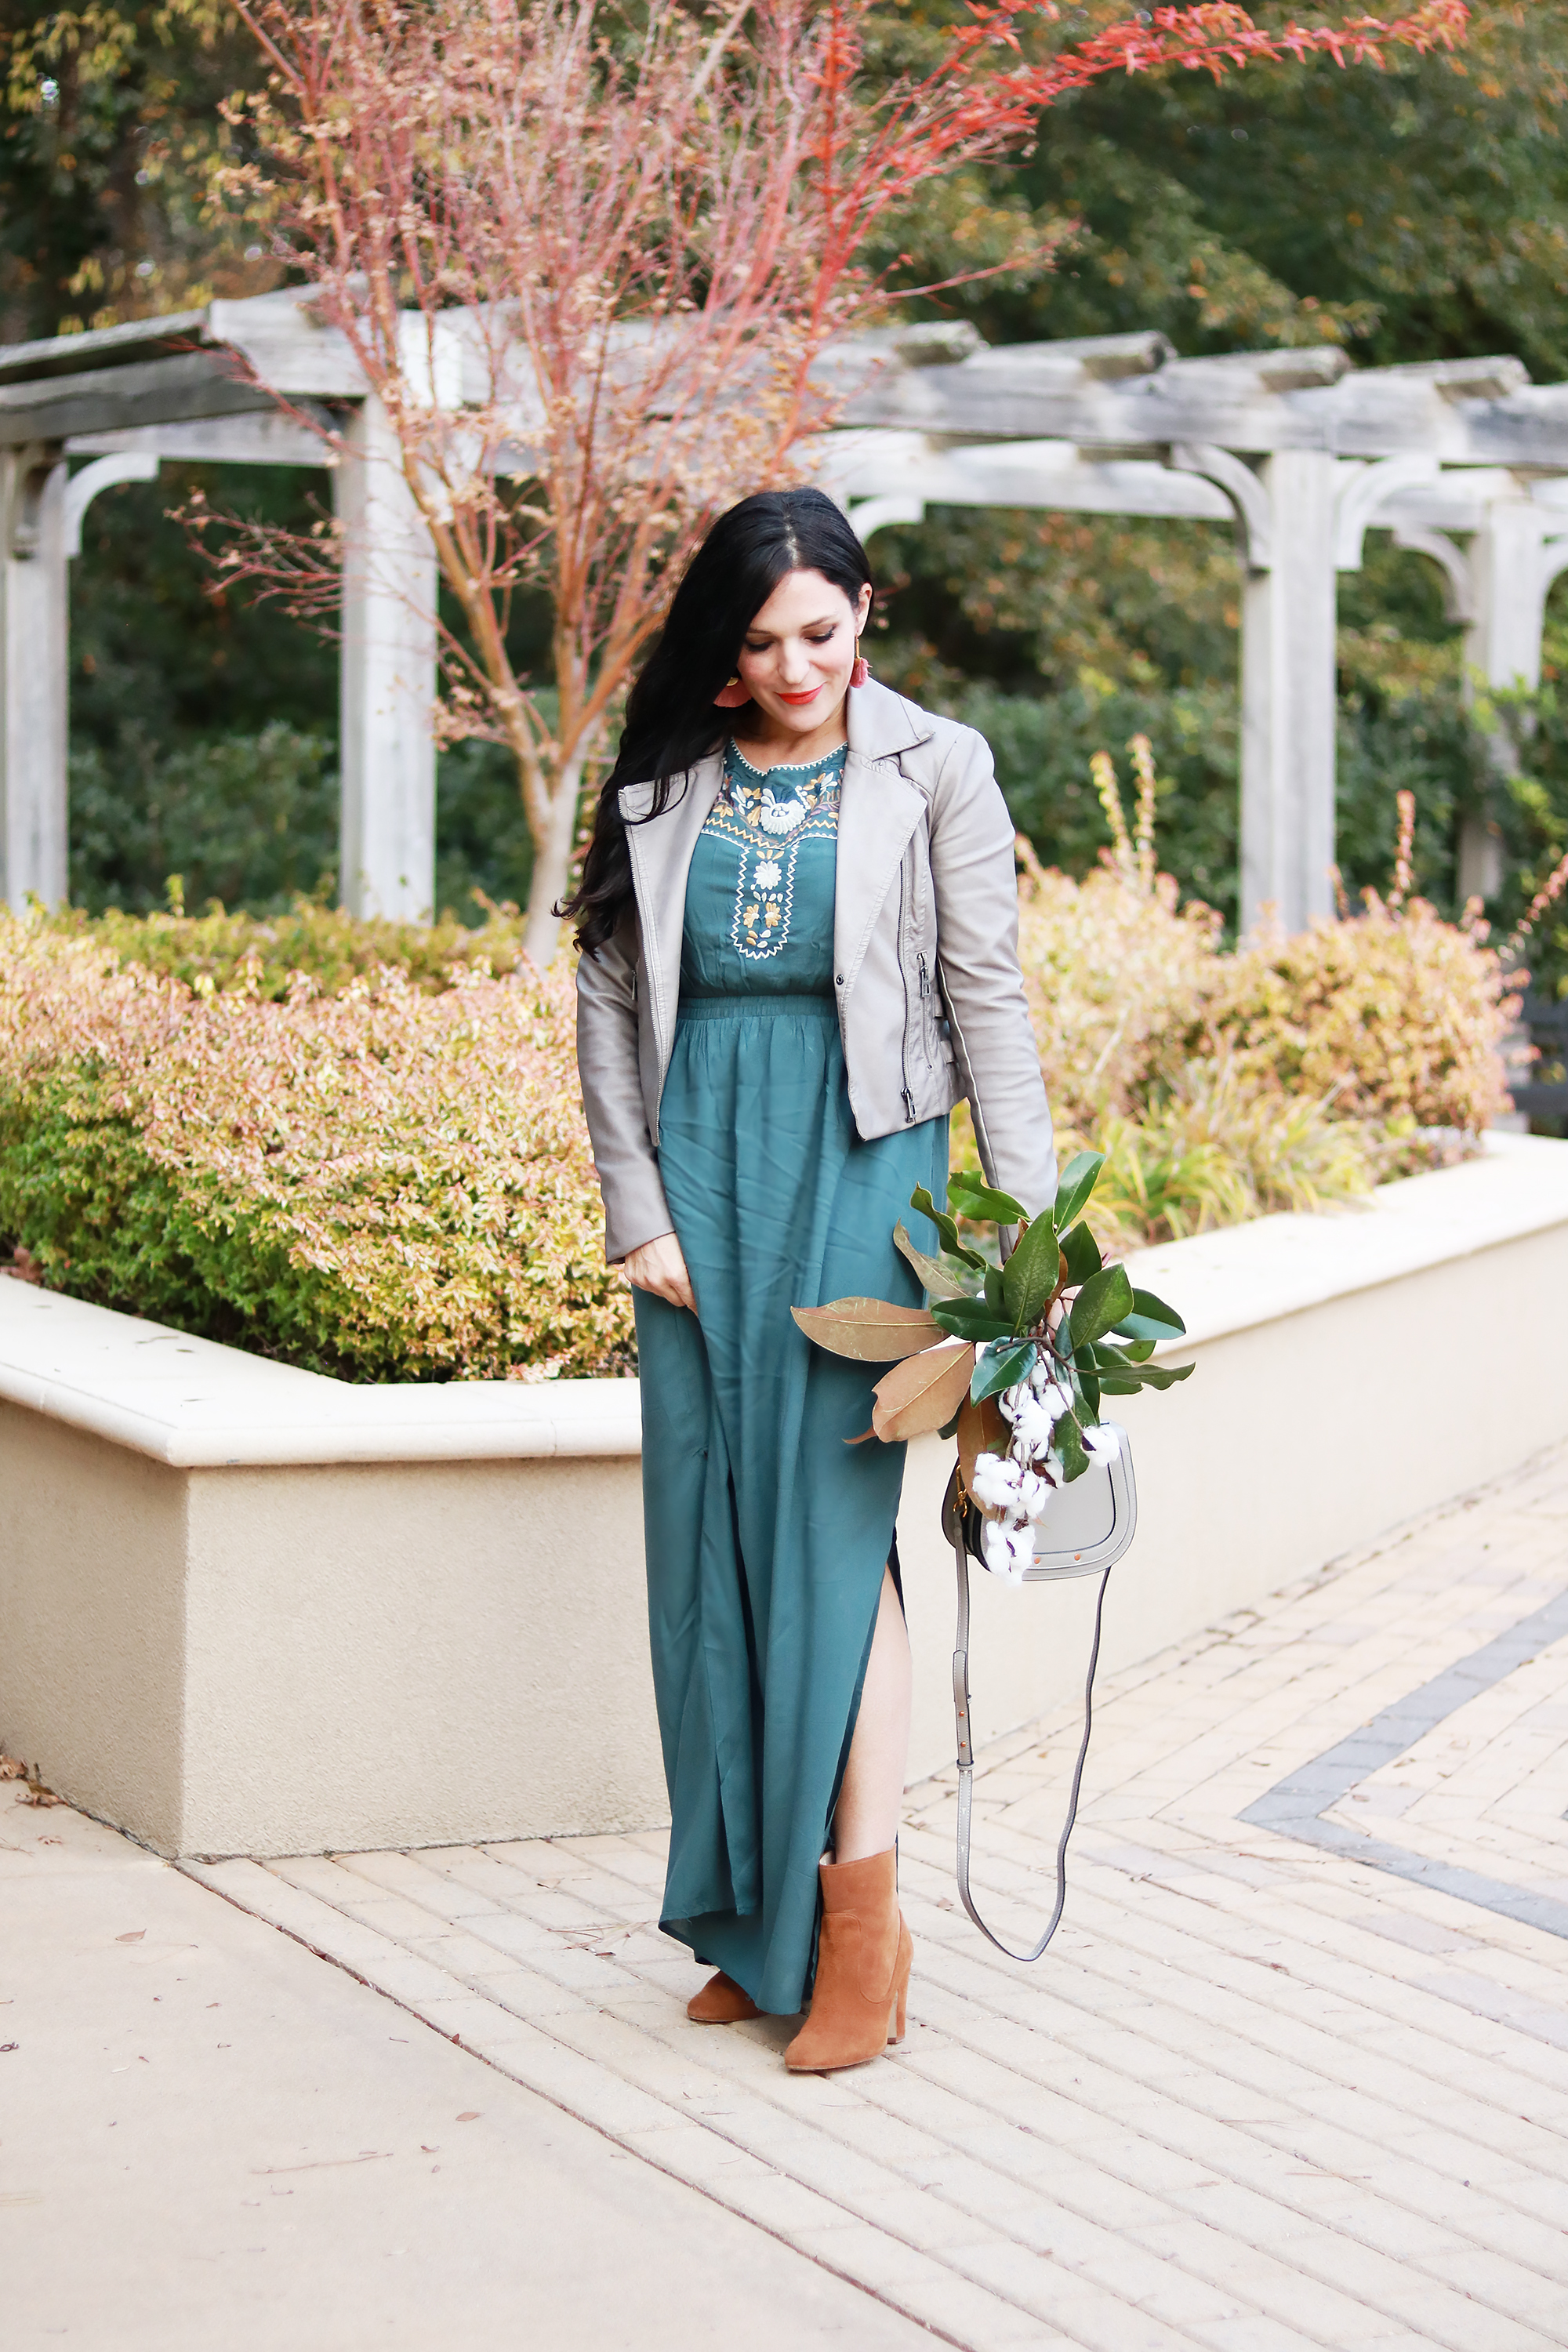 the best of Black Friday 2017, Black Friday sales, Black Friday promotions, darleen Meier jewelry discounts, pink desert discount, sales and deals, long dress winter outfit styling